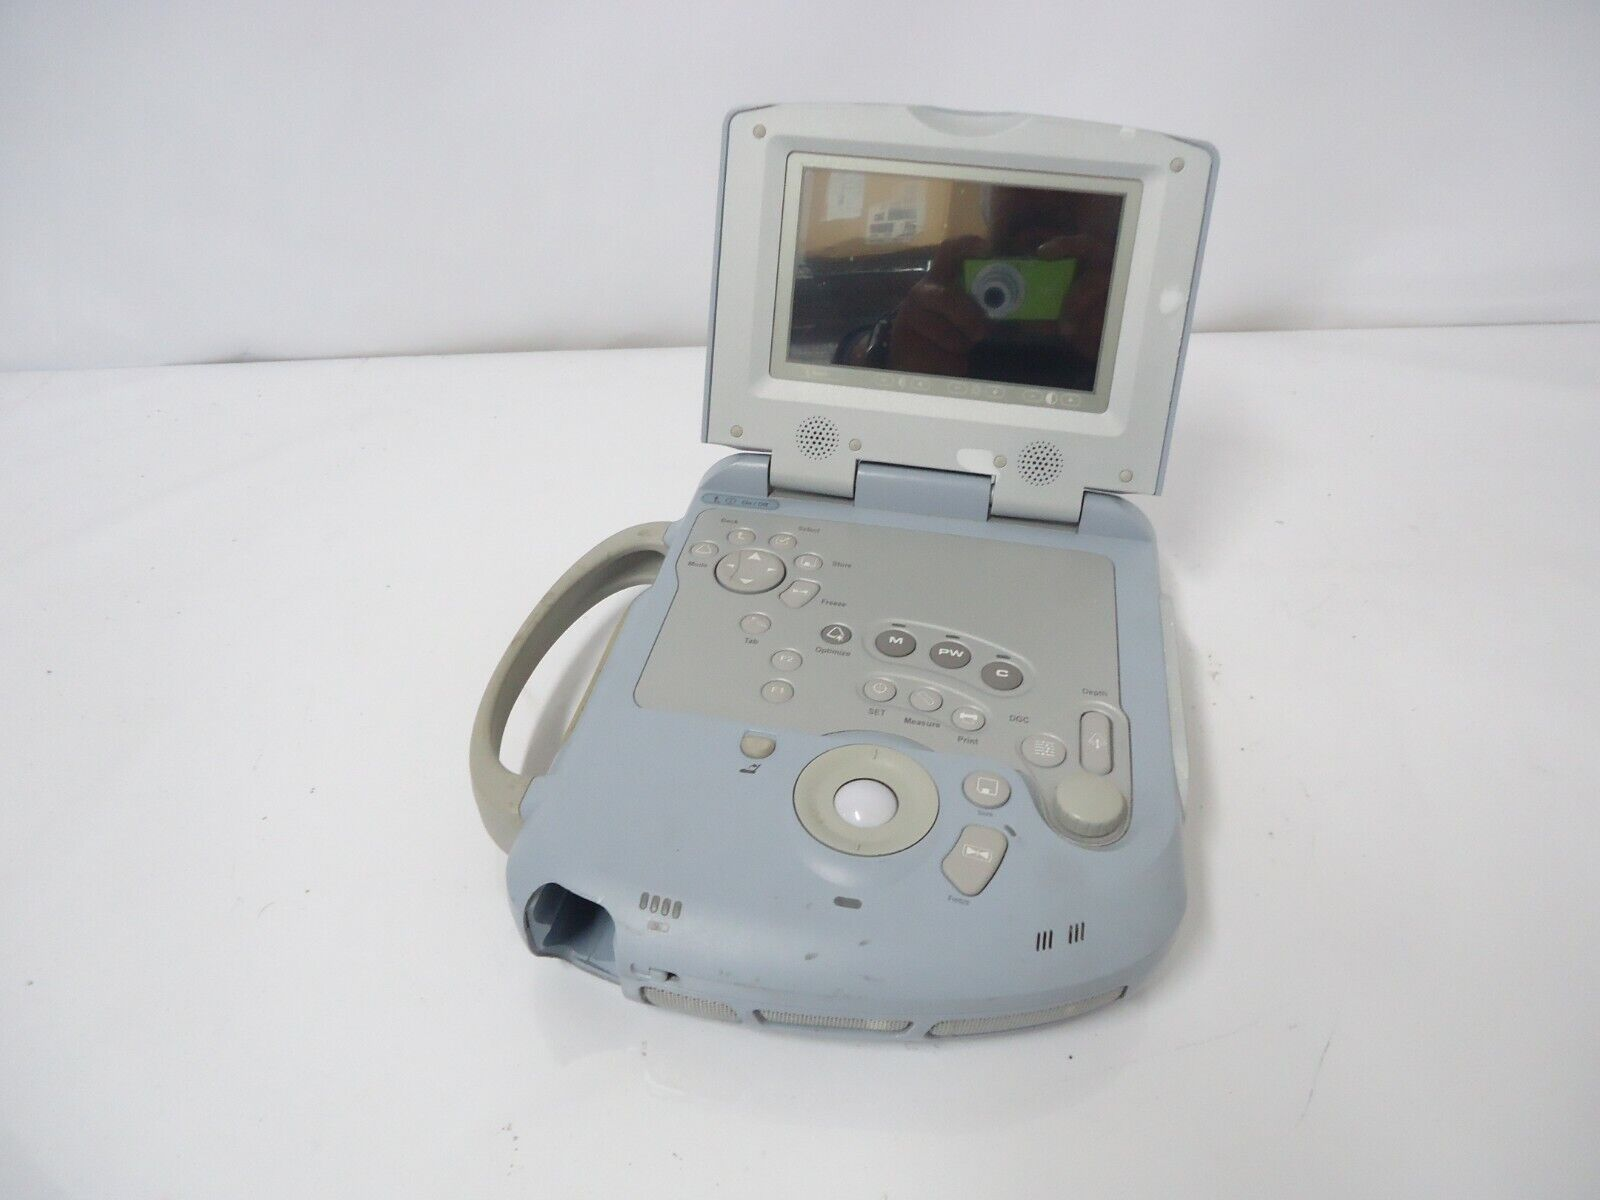 Best USED ZONARE Z. ONE SCAN ENGINE PORTABLE ULTRASOUND SYSTEM NO BATTERY GREAT UNIT! READ